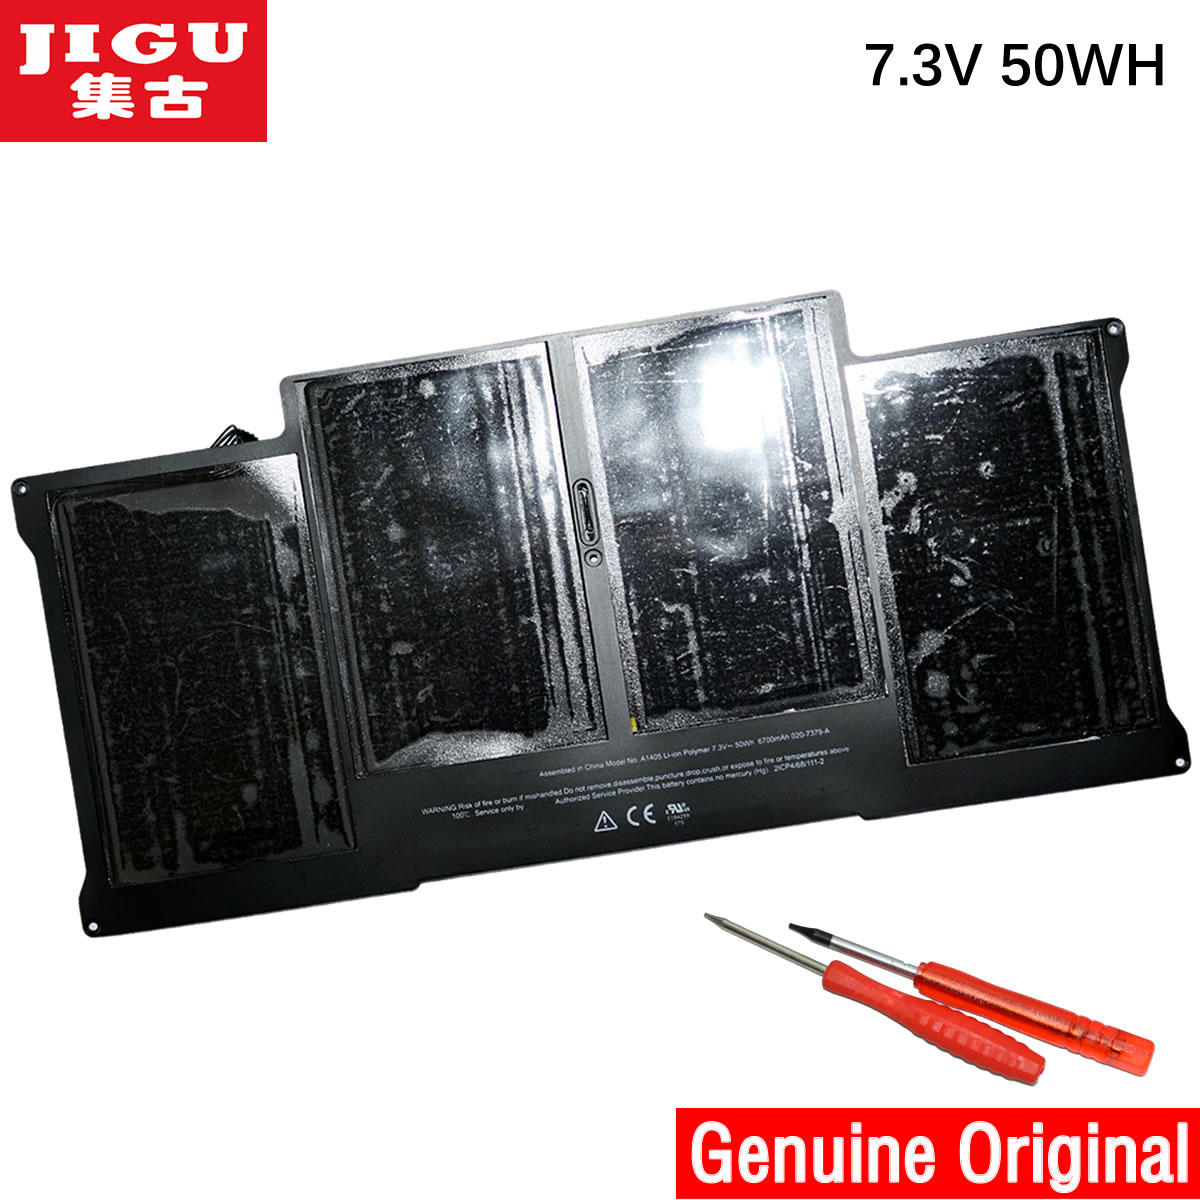 JIGU Original laptop <font><b>Battery</b></font> for Apple MacBook Air 13